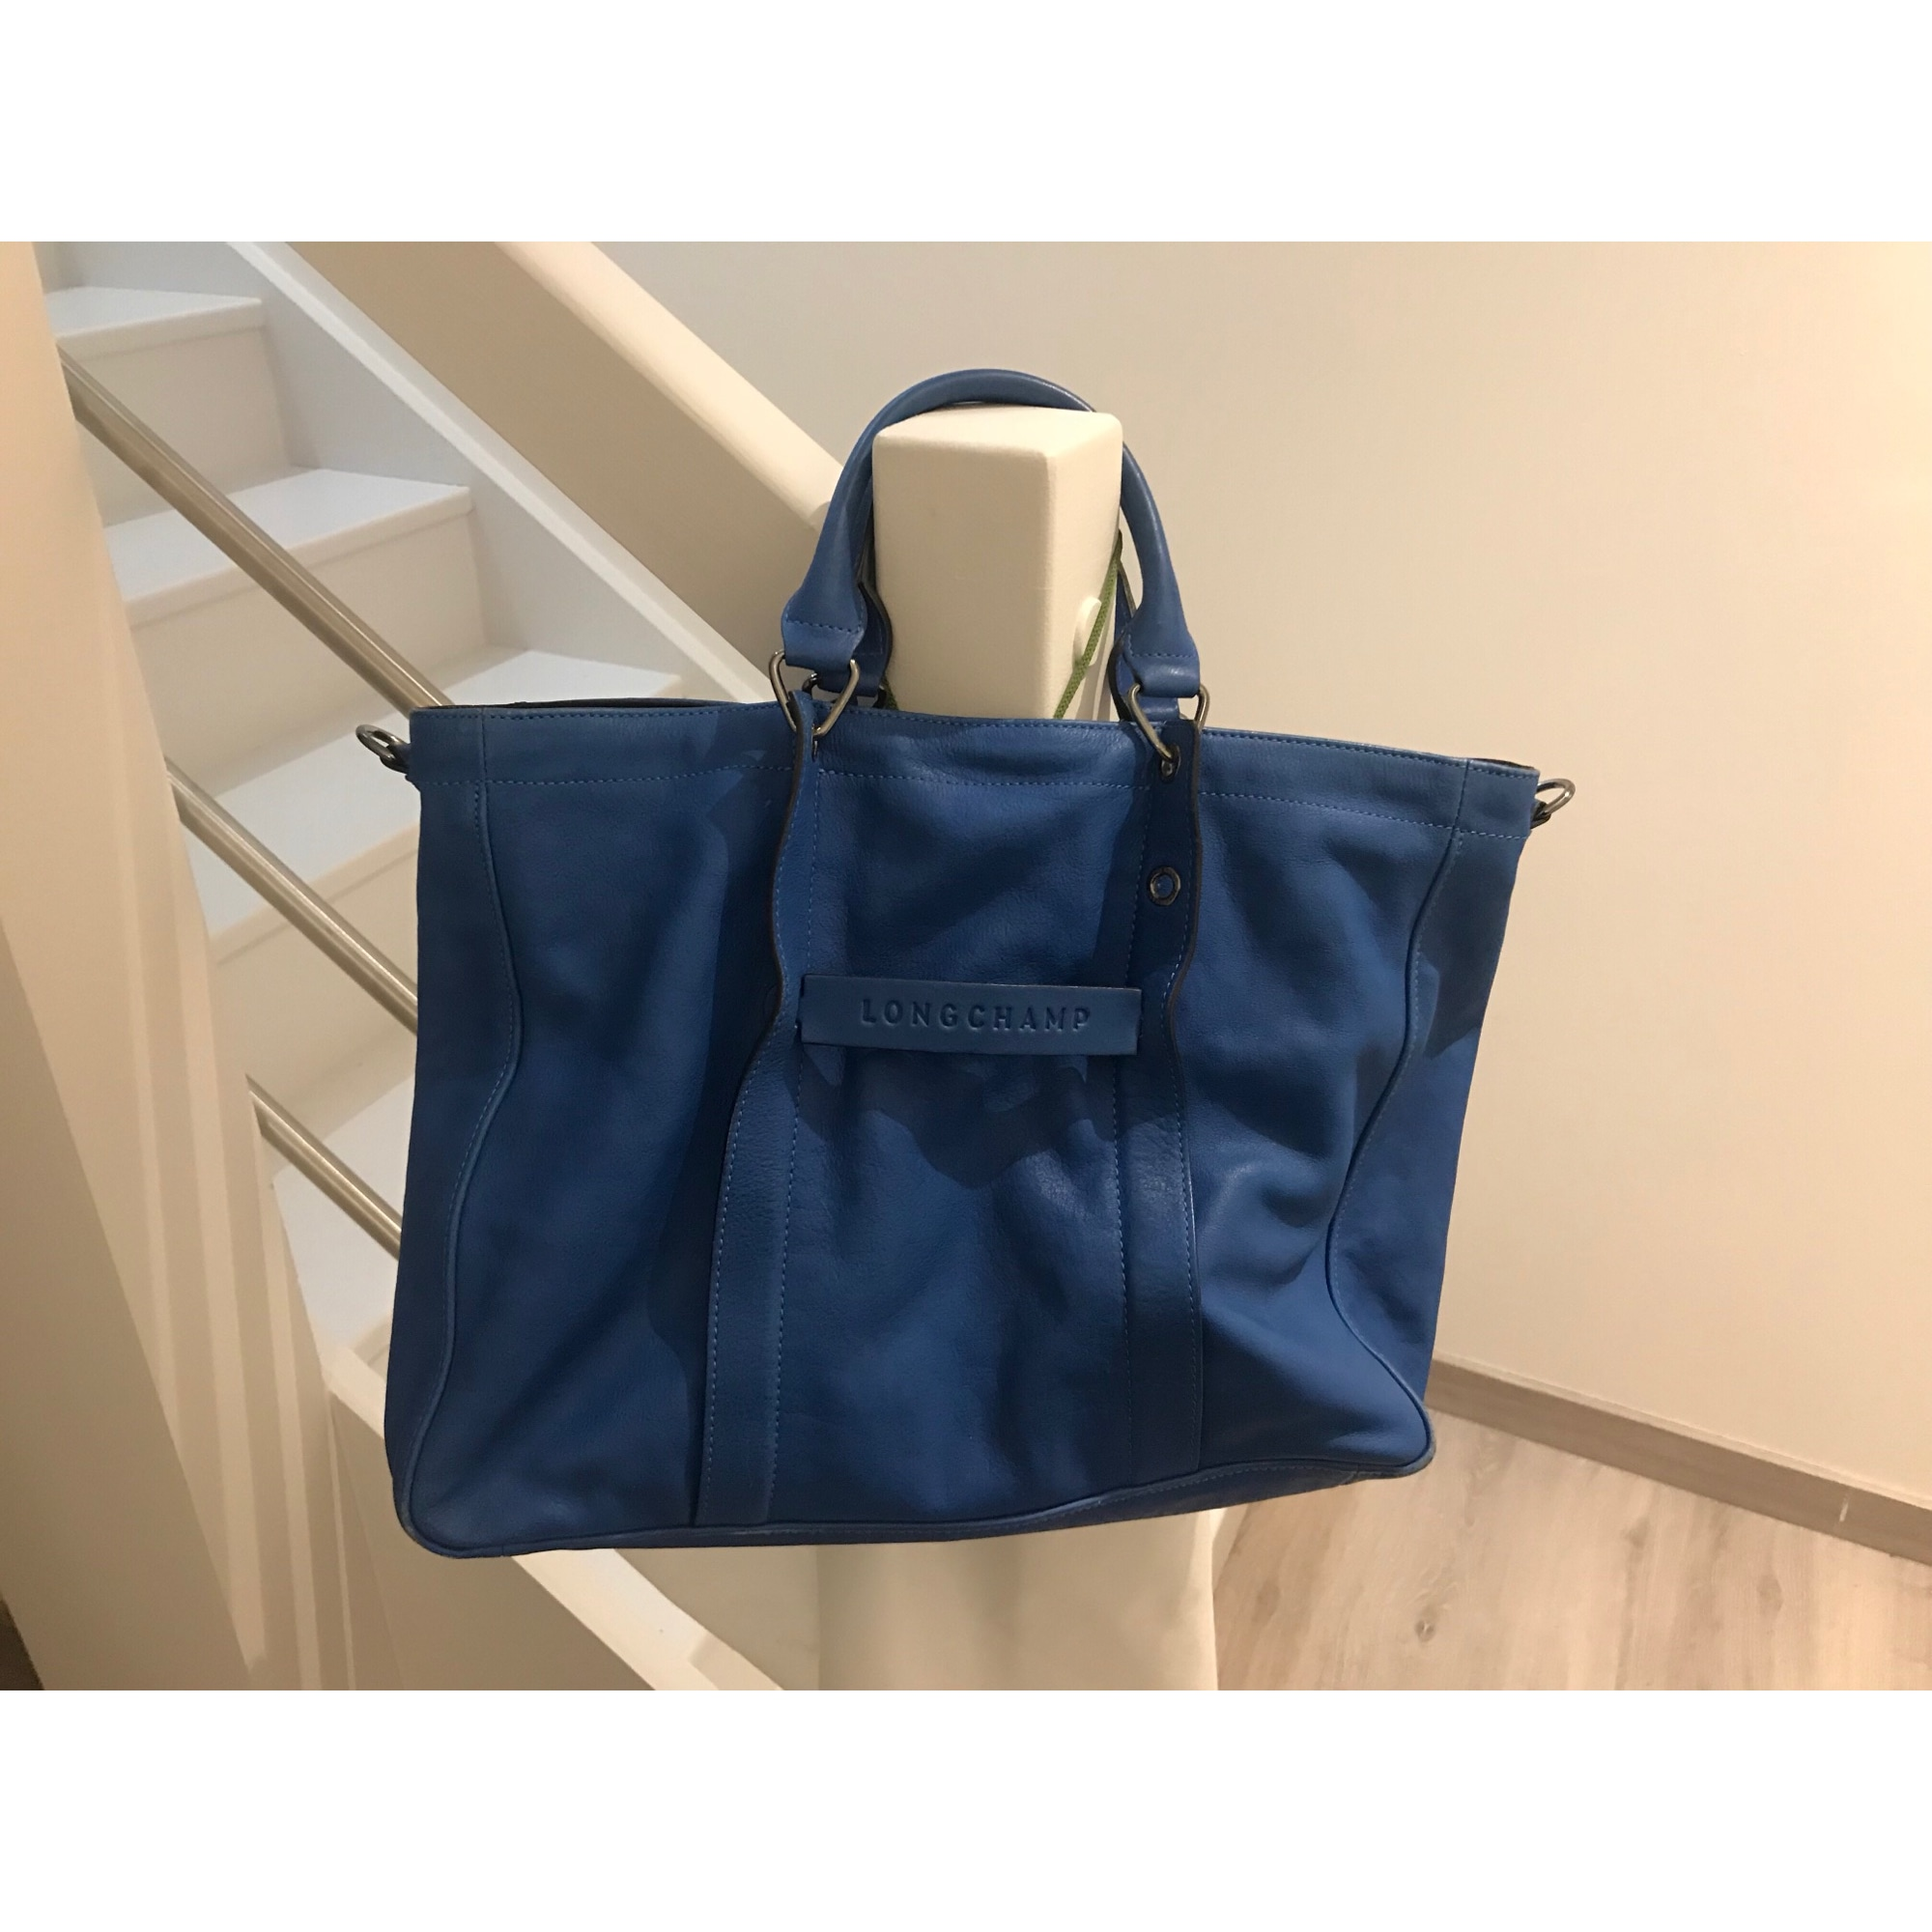 Leather Venduto Longchamp 7094867 Blue Lumpy da Handbag O804qxp